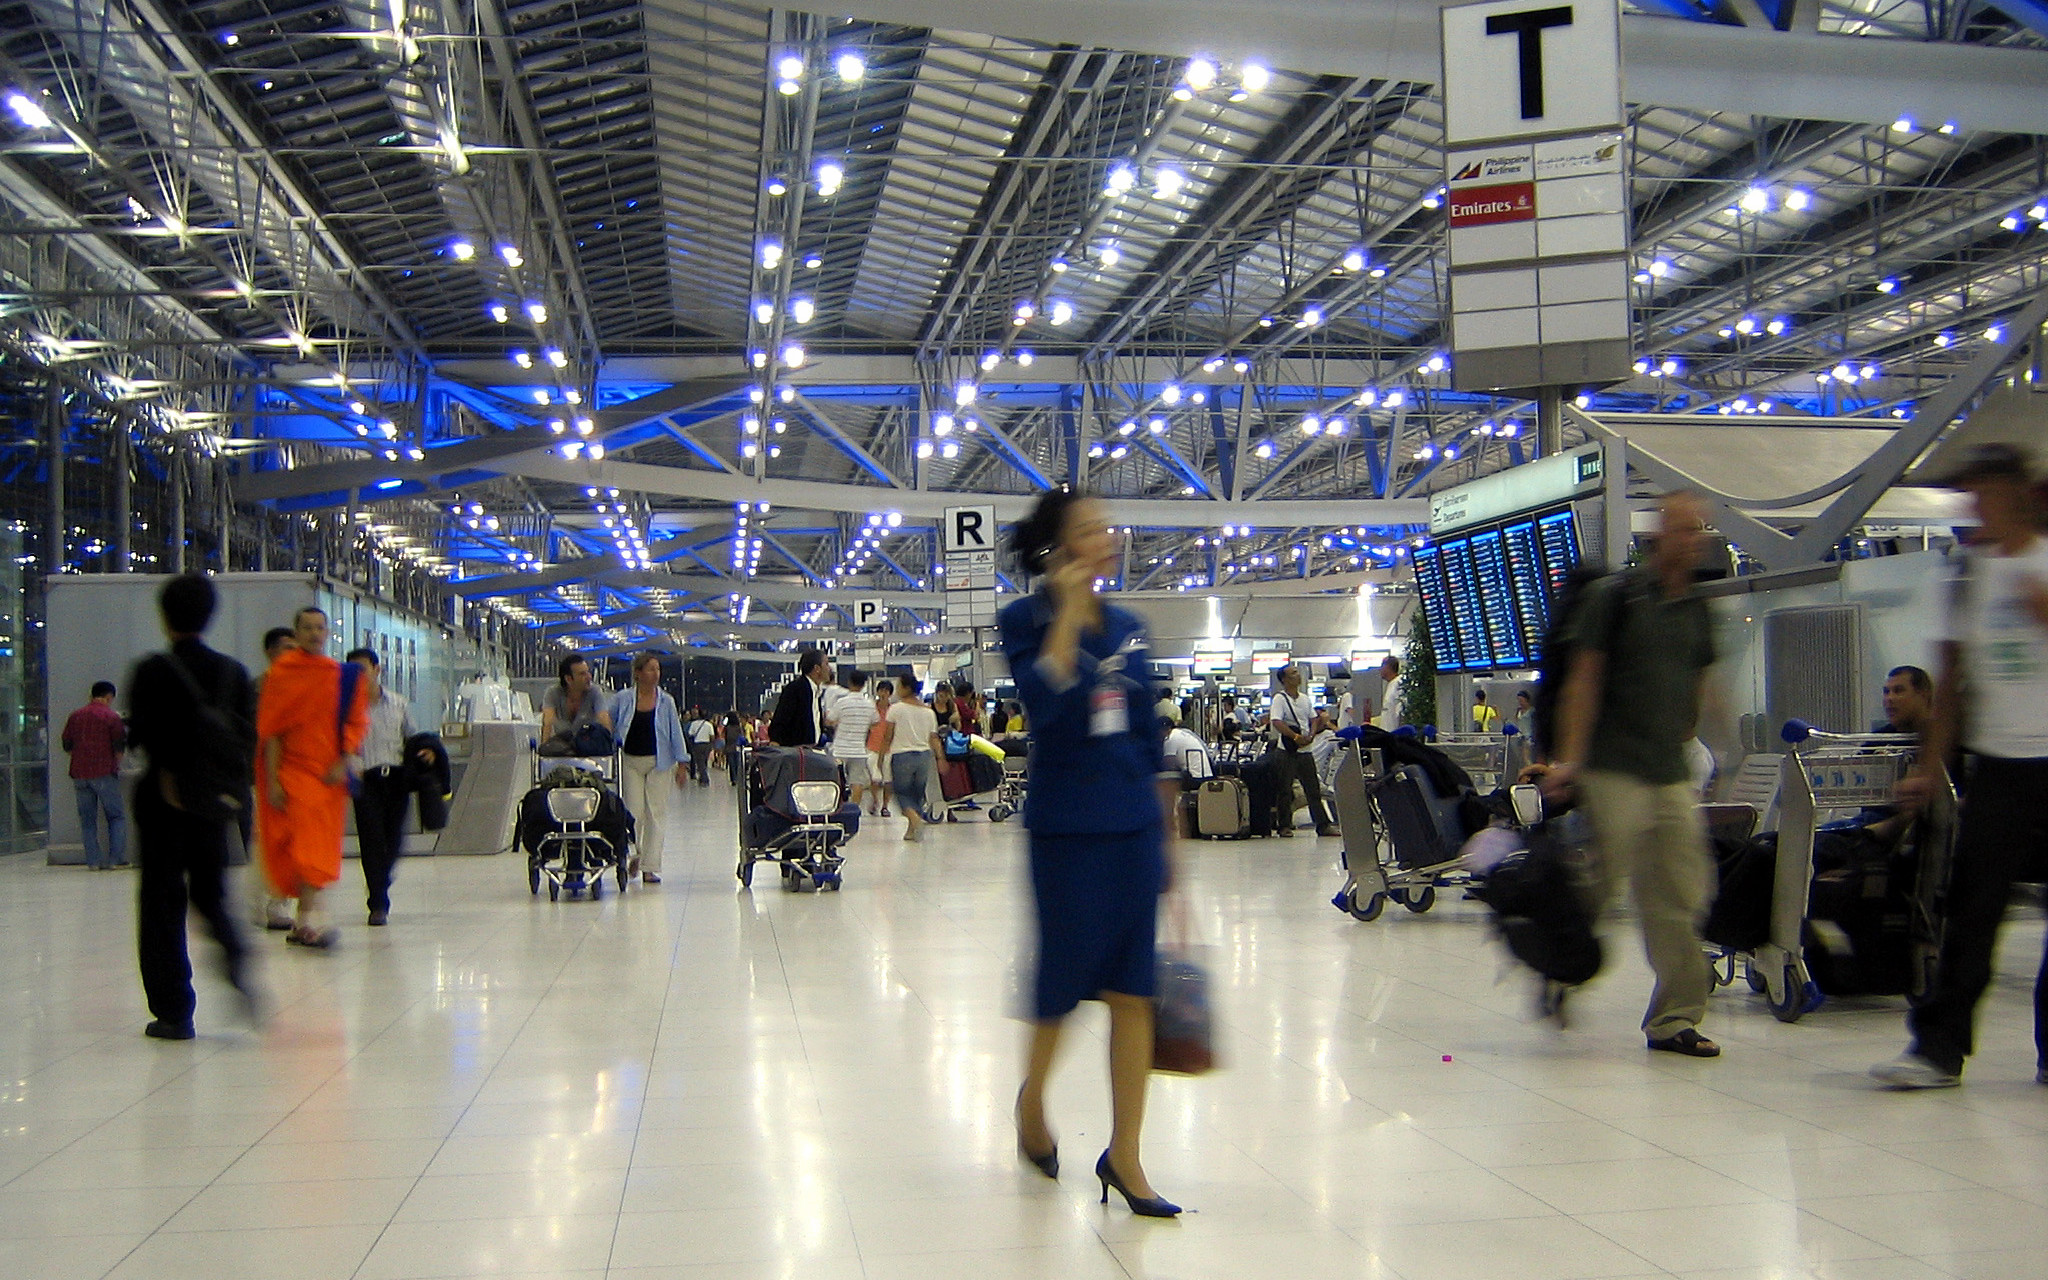 Image: People blurred and moving through a busy airport in Bangkok.